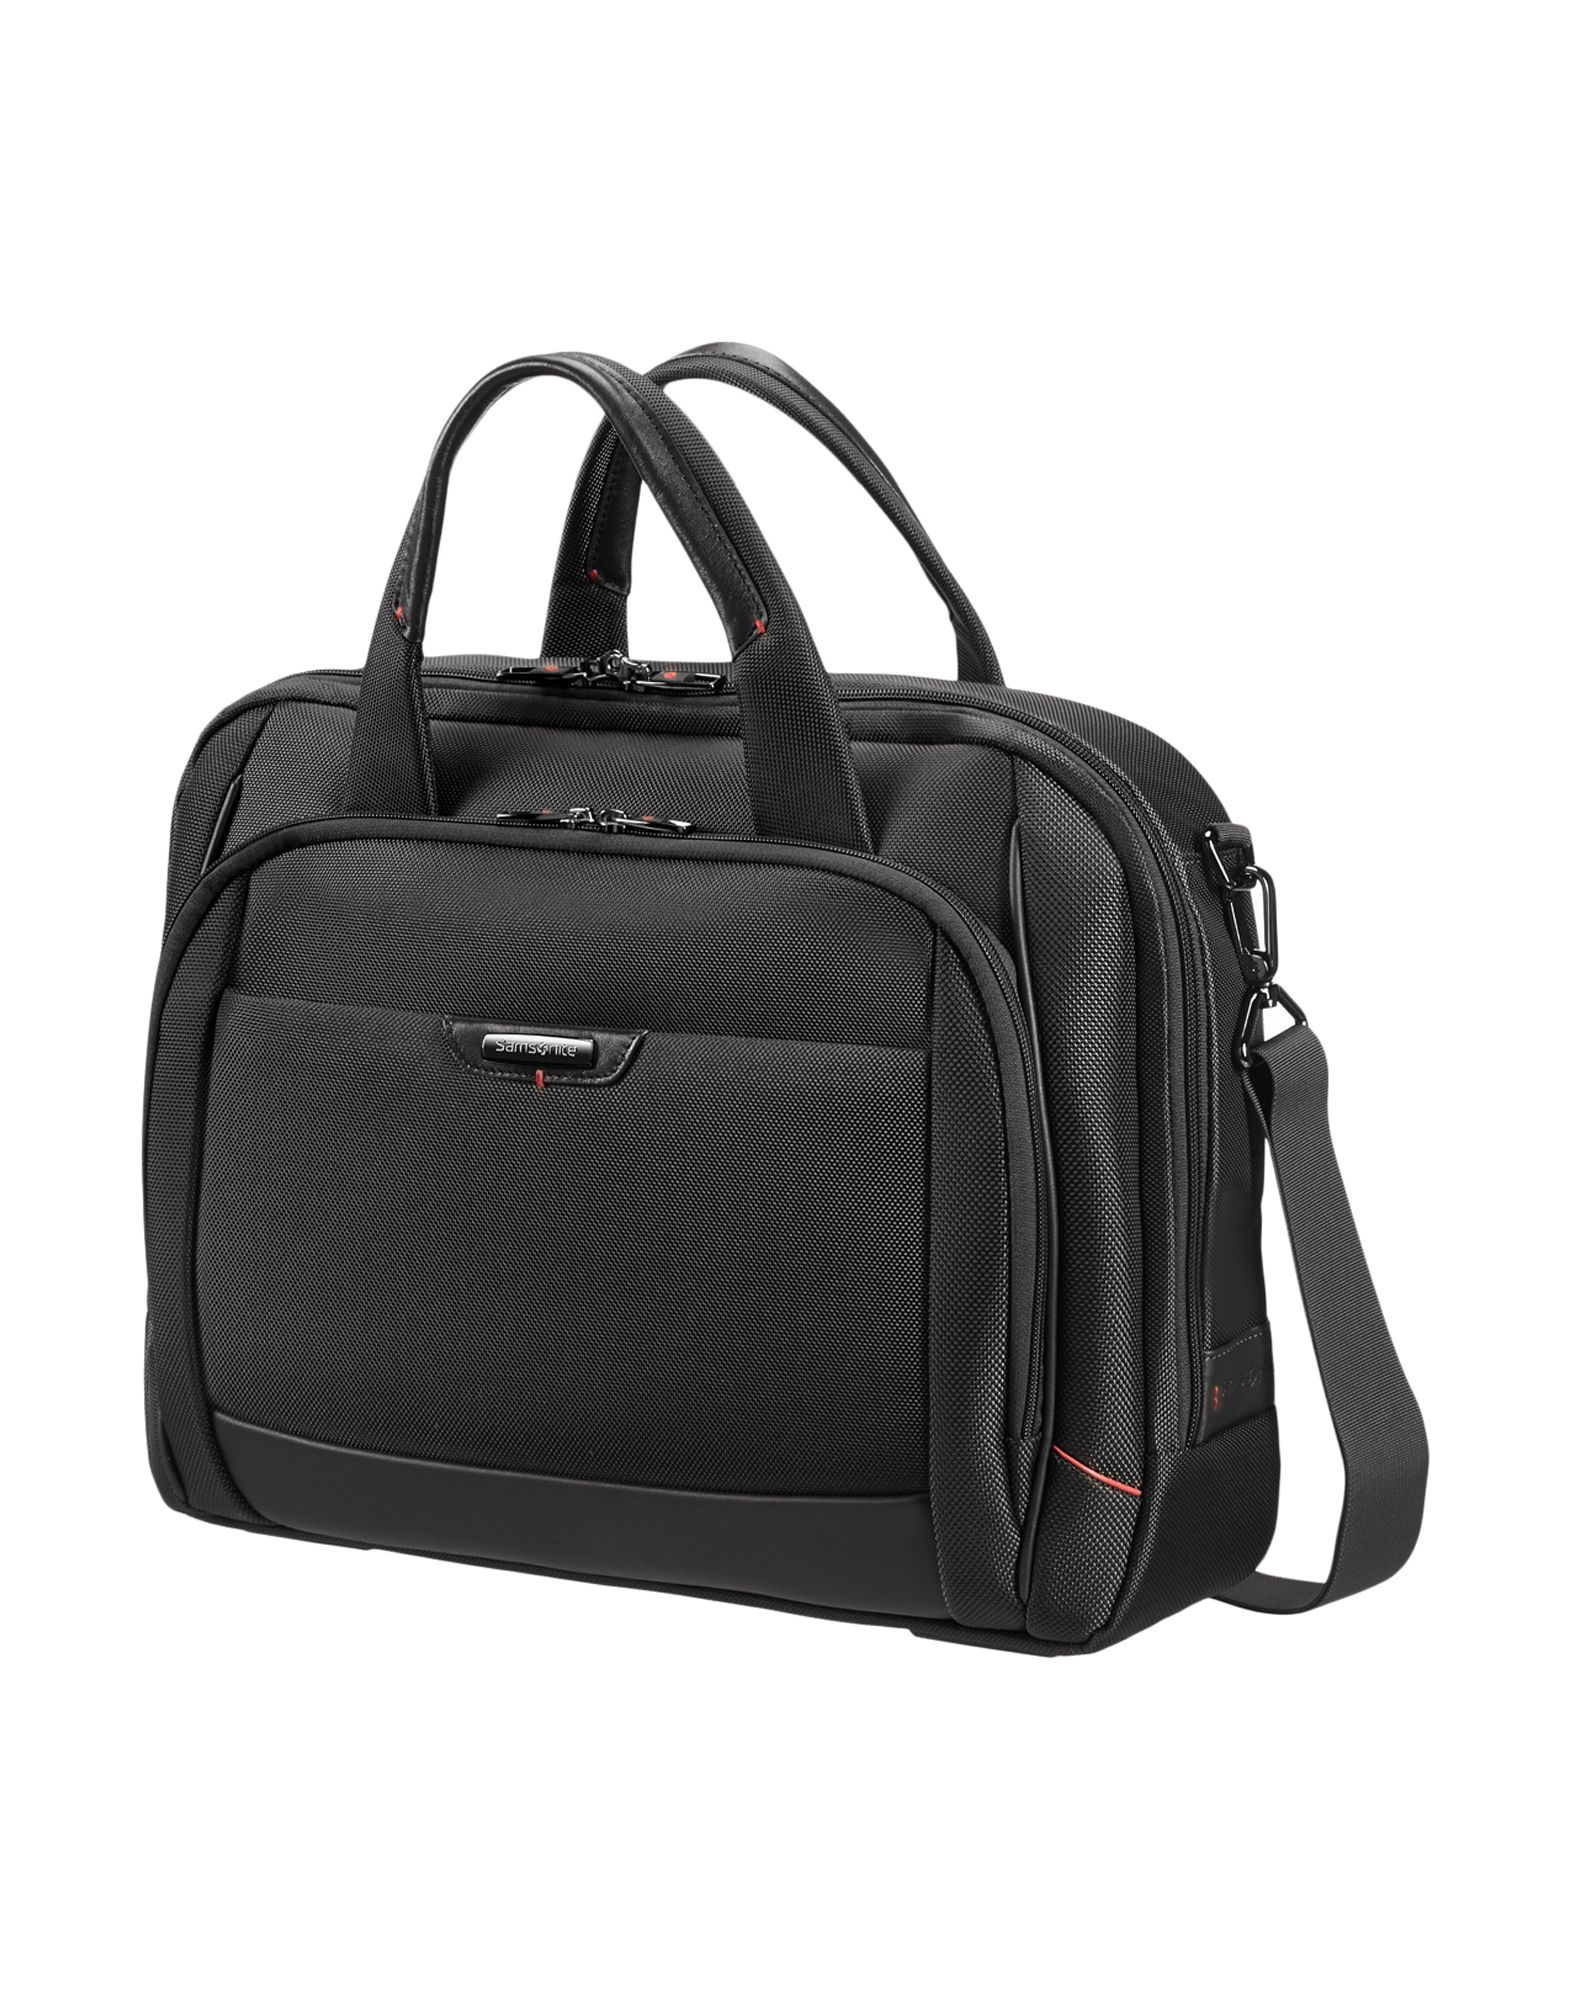 Lyst Samsonite Business Travel Bag In Black